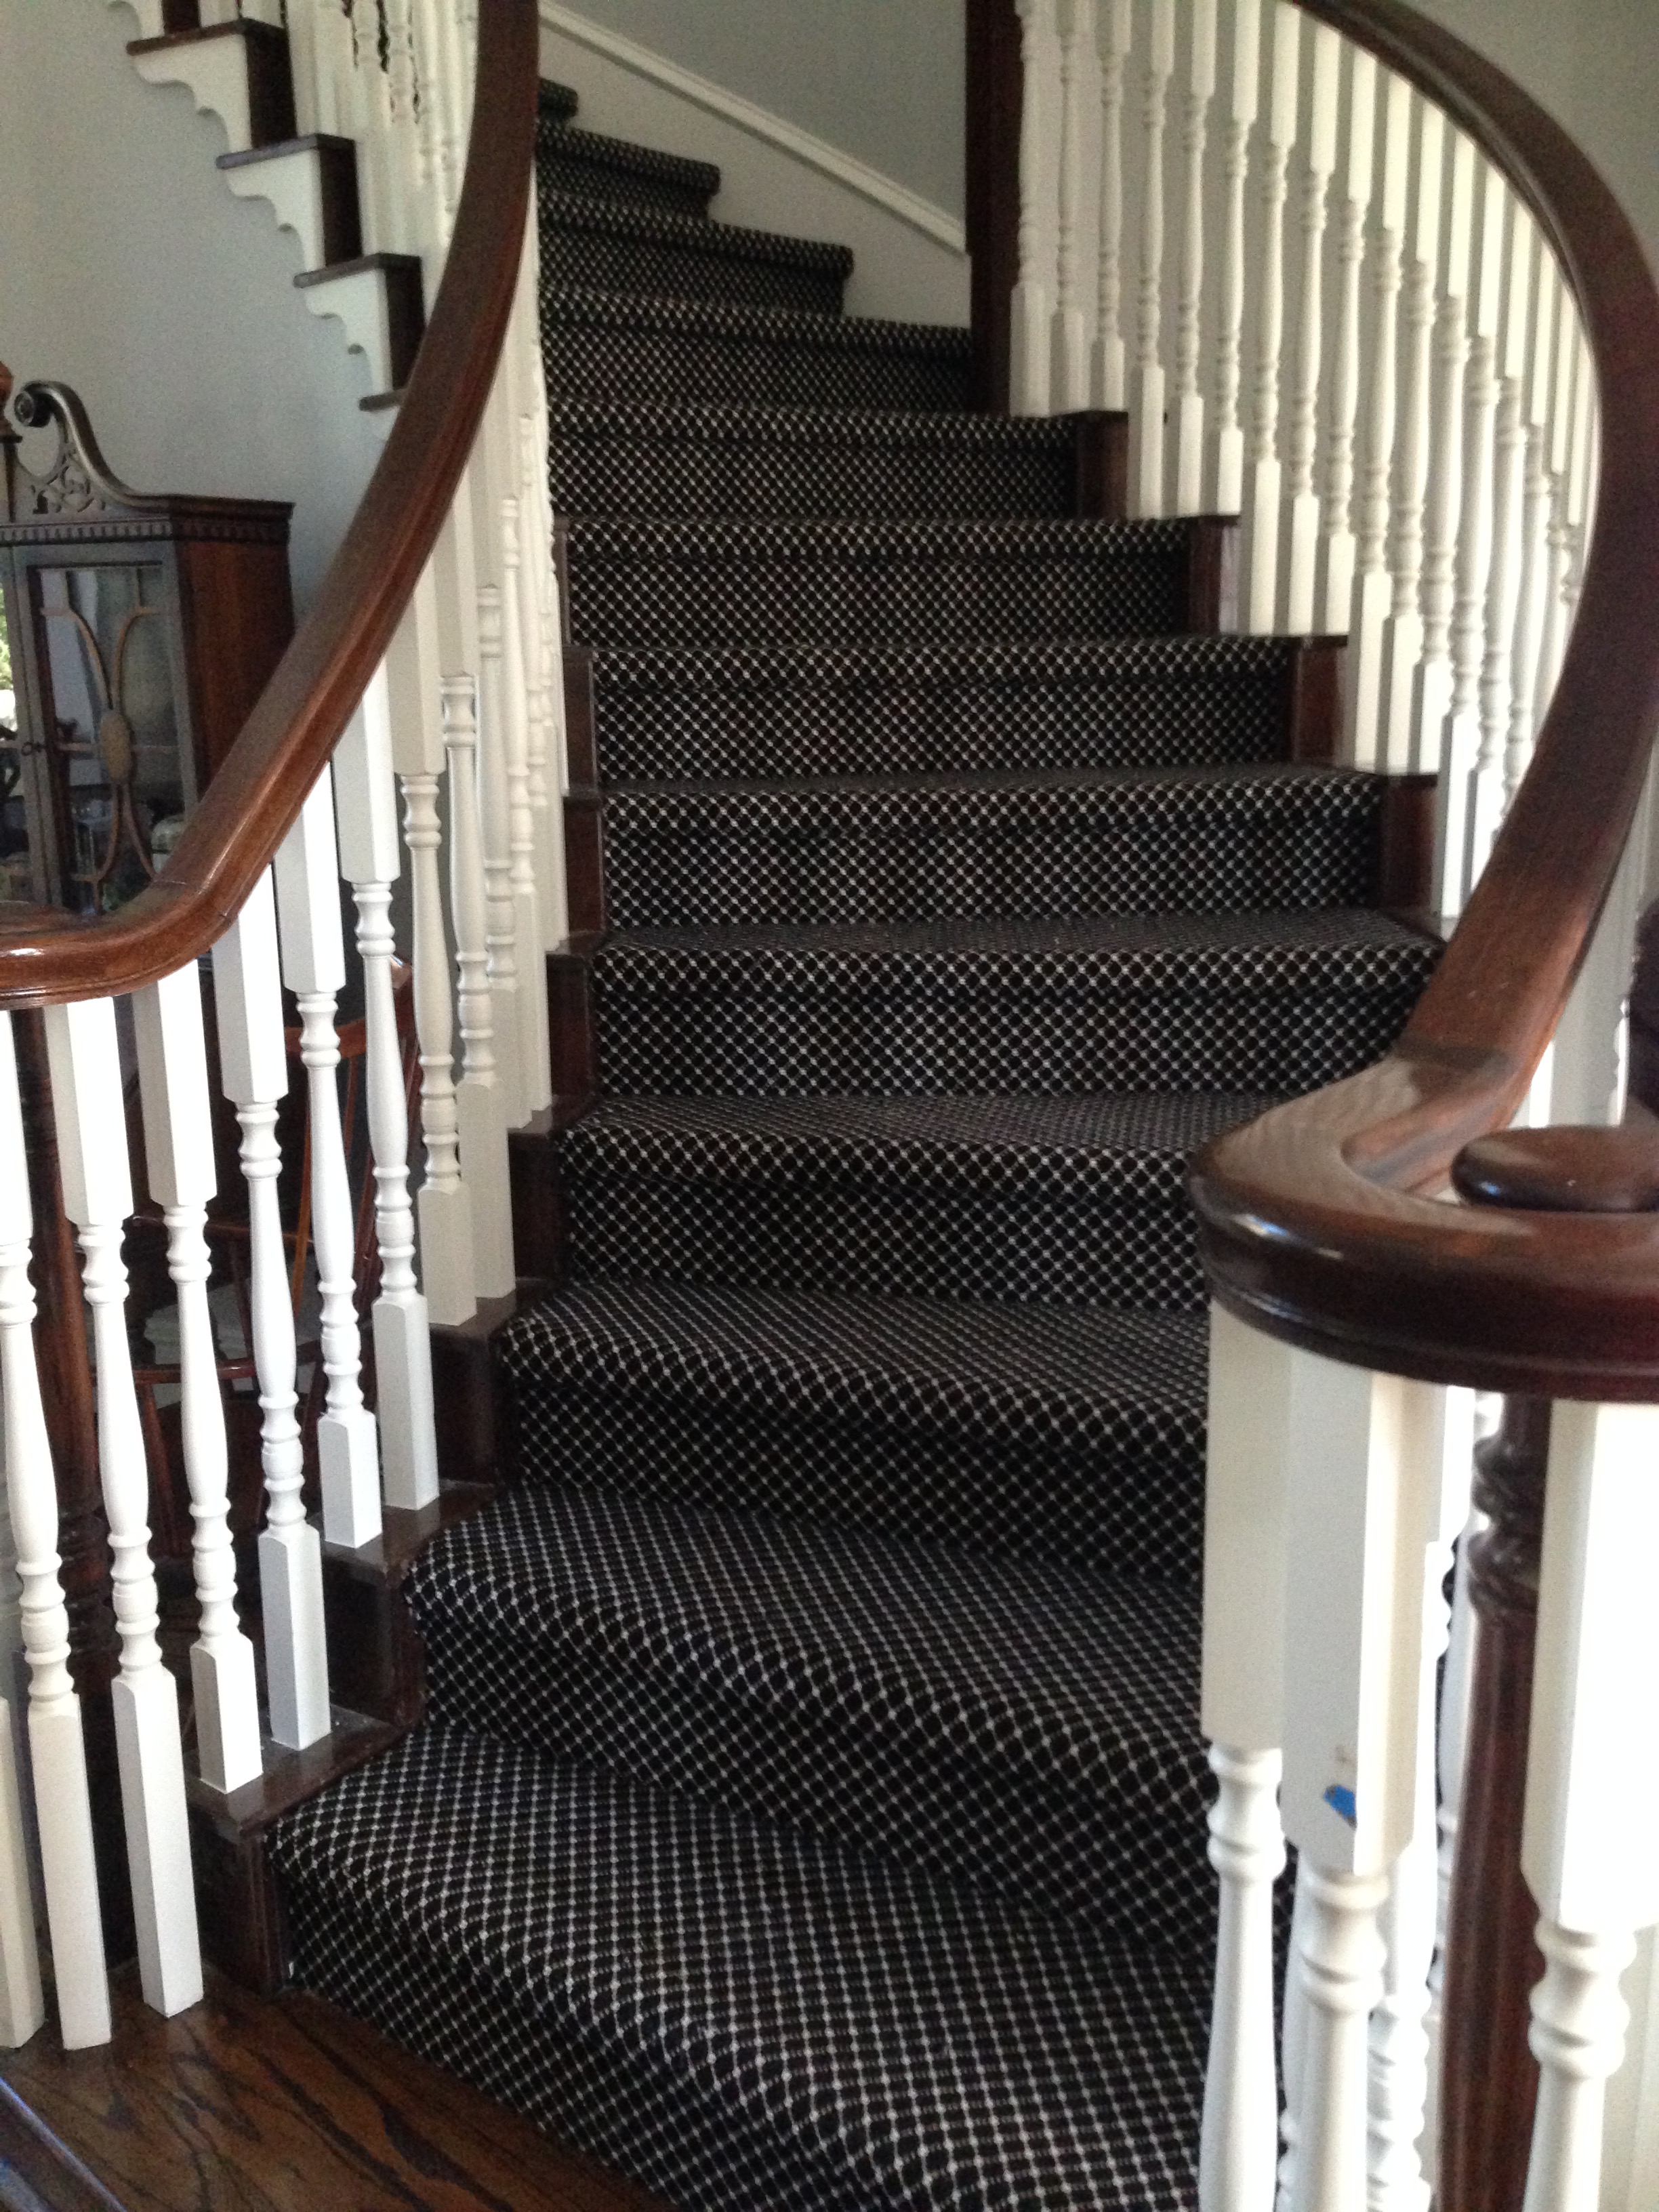 Should I Carpet My Stairs With The Same Carpet I Use